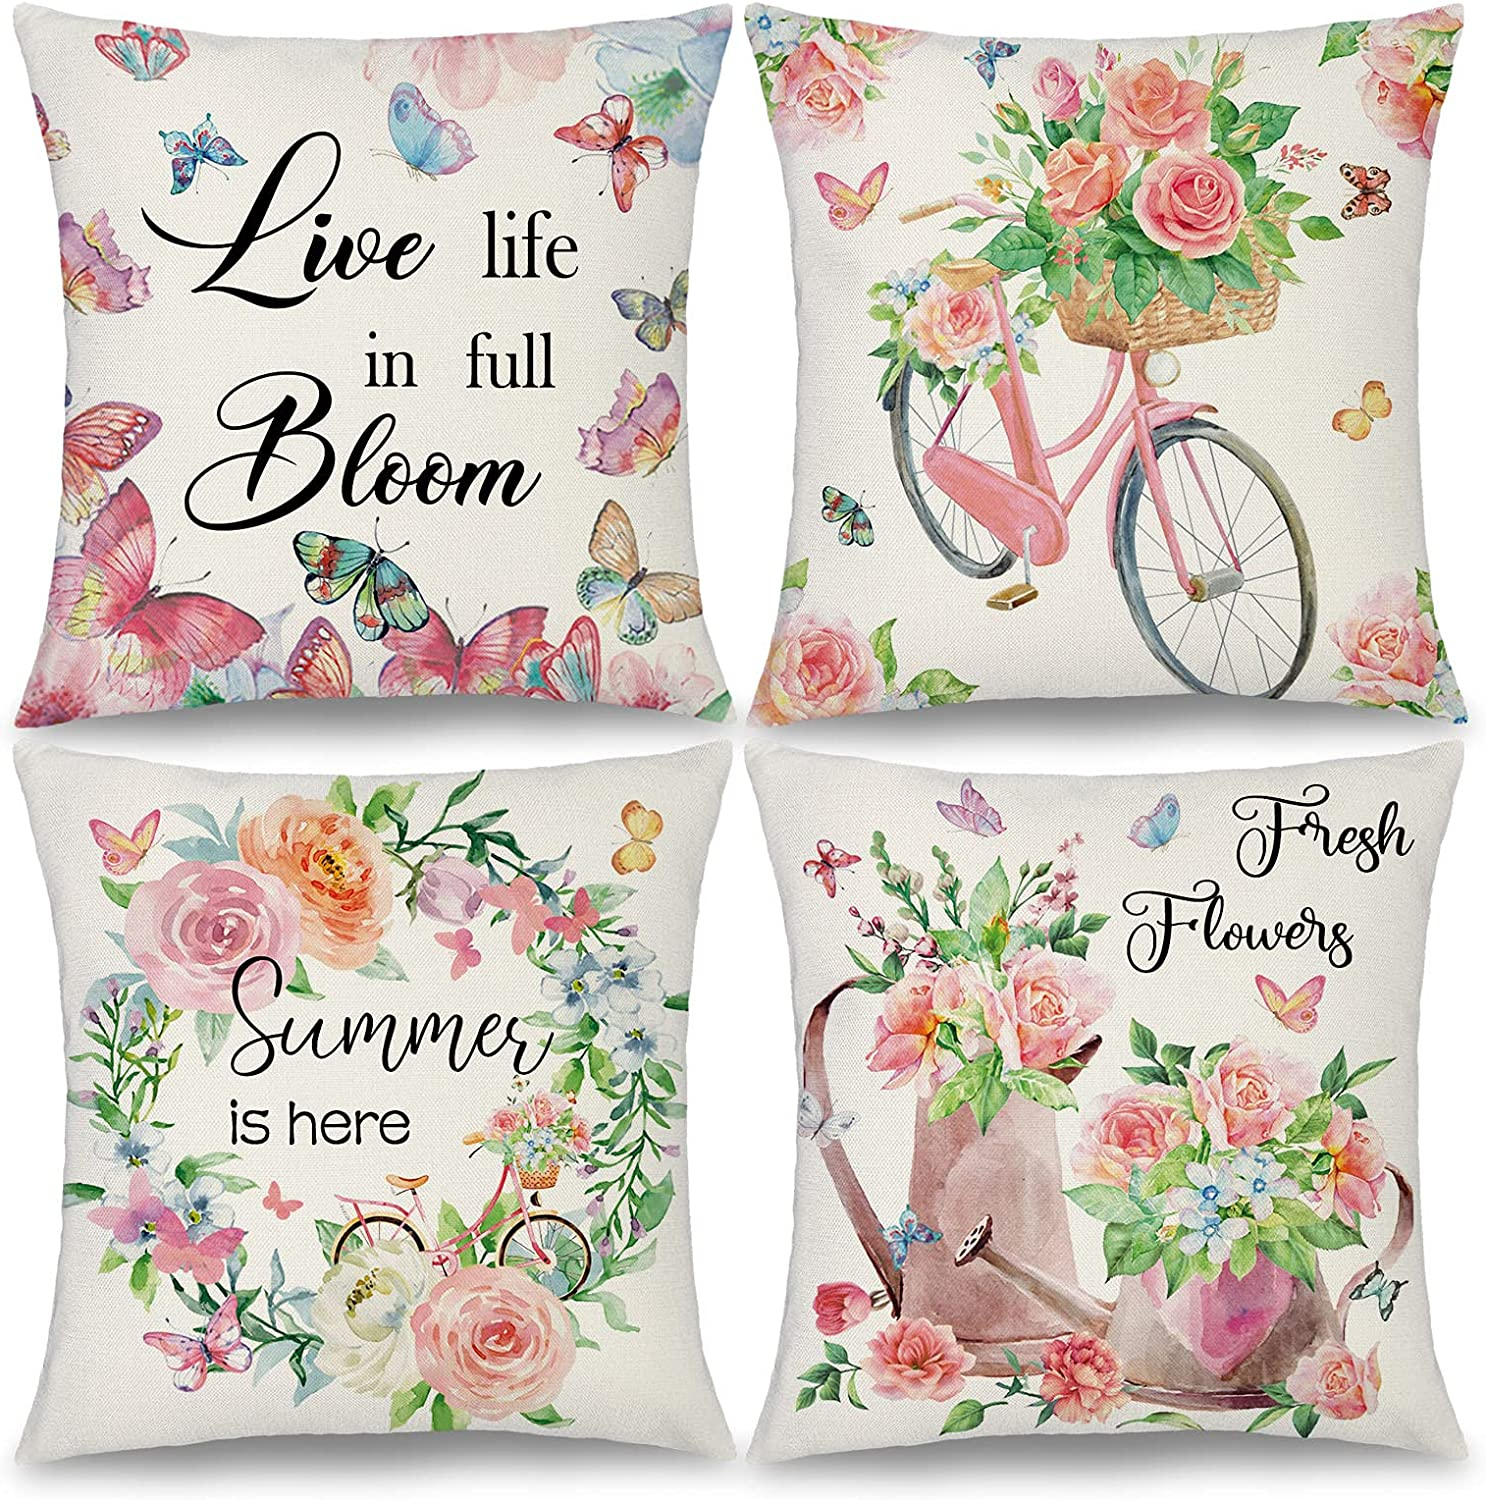 Binfemcy Farmhouse Square Al sold out. Pillow Cover Wreat Flower 18x18 Summer Max 64% OFF